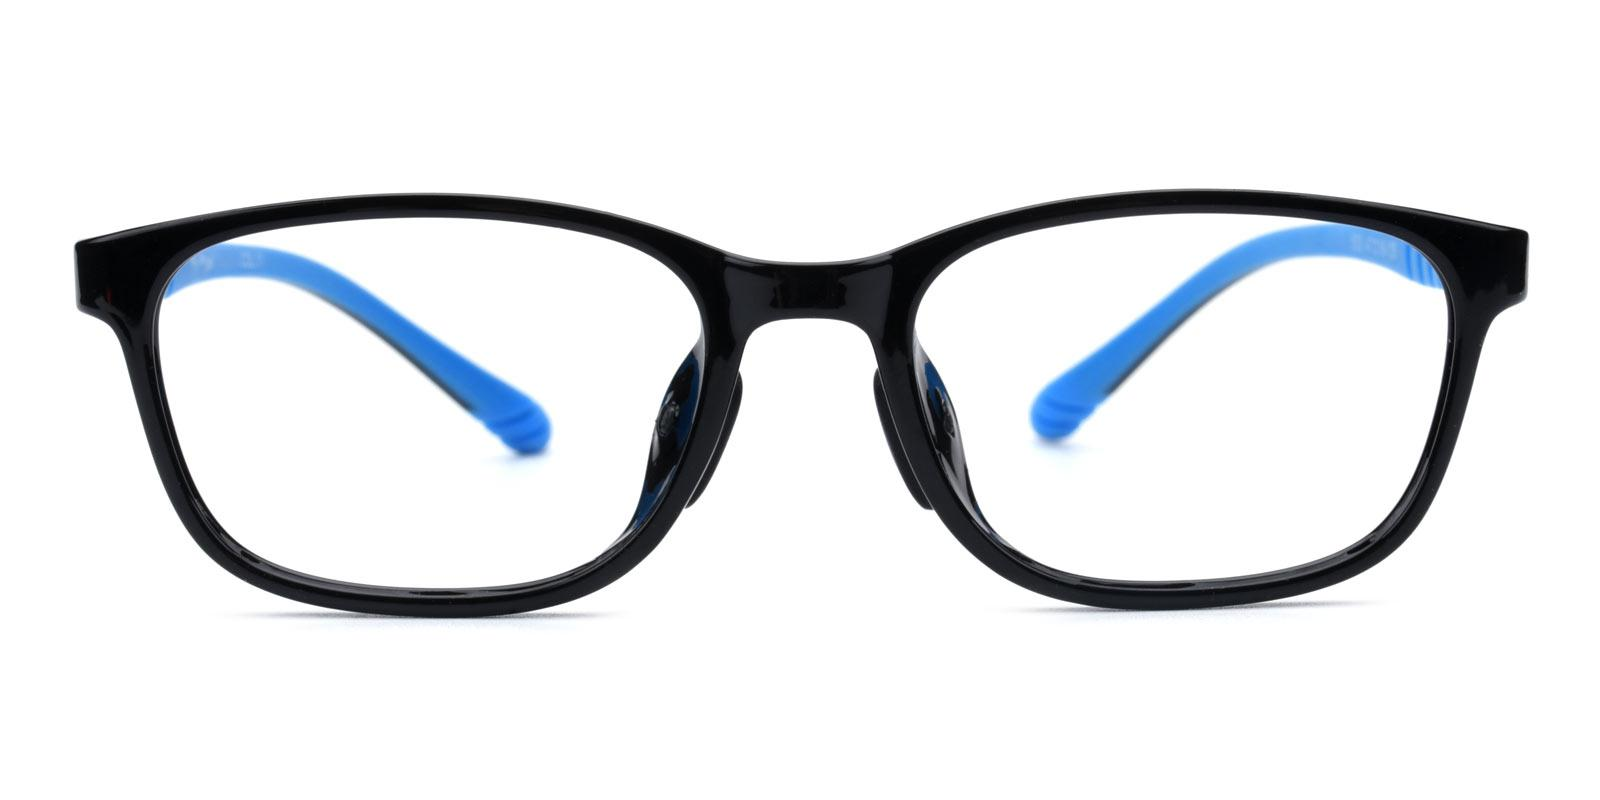 Adward-Multicolor-Rectangle-Combination-Eyeglasses-detail